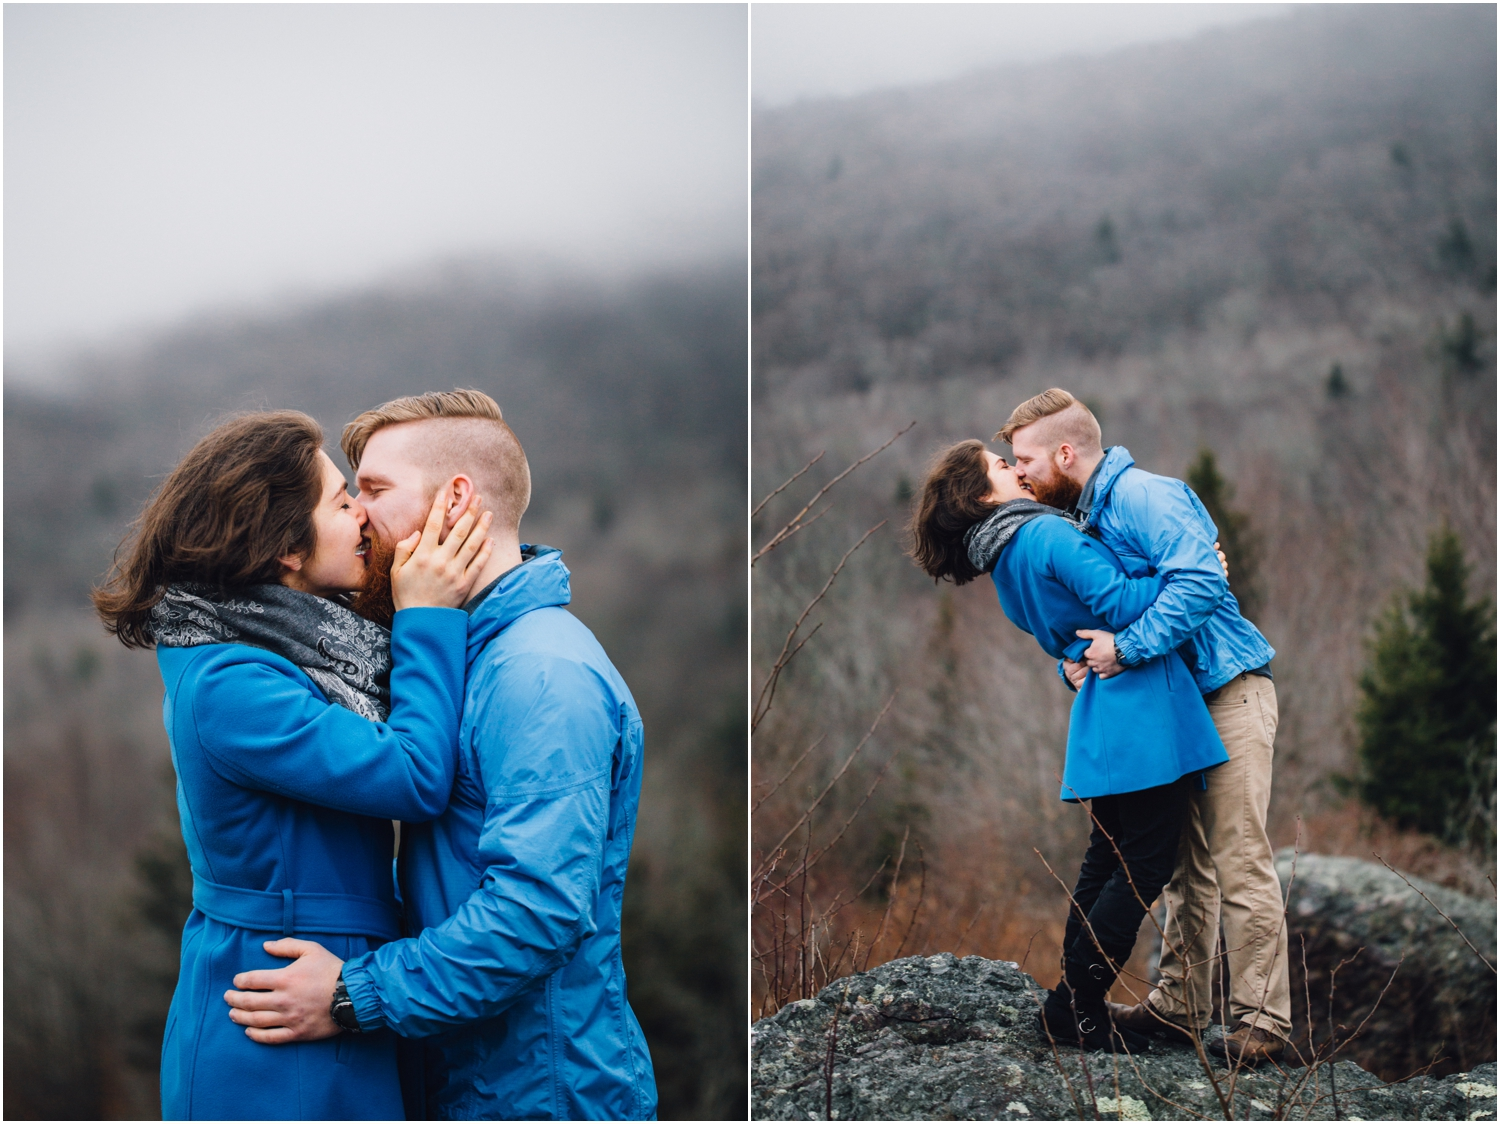 katy-sergent-photography-grayson-highlands-engagement-session-mouth-of-wilson-virginia-damascus-appalachian-trail-tennessee-wedding-elopement_0024.jpg